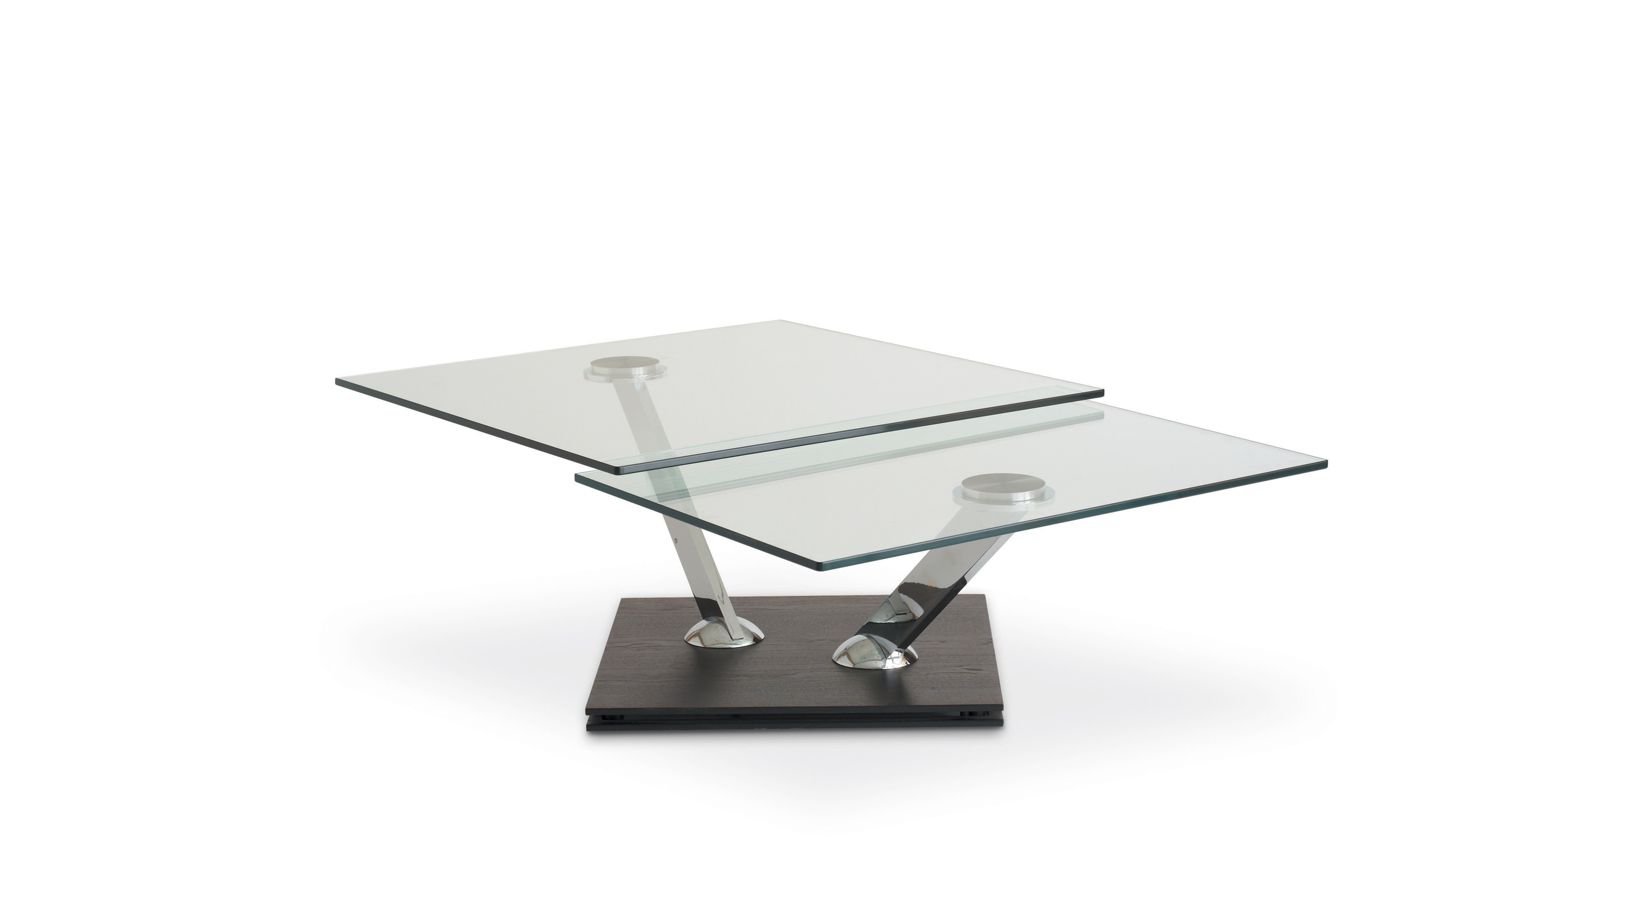 Table basse tea time roche bobois - Roche bobois table basse ...